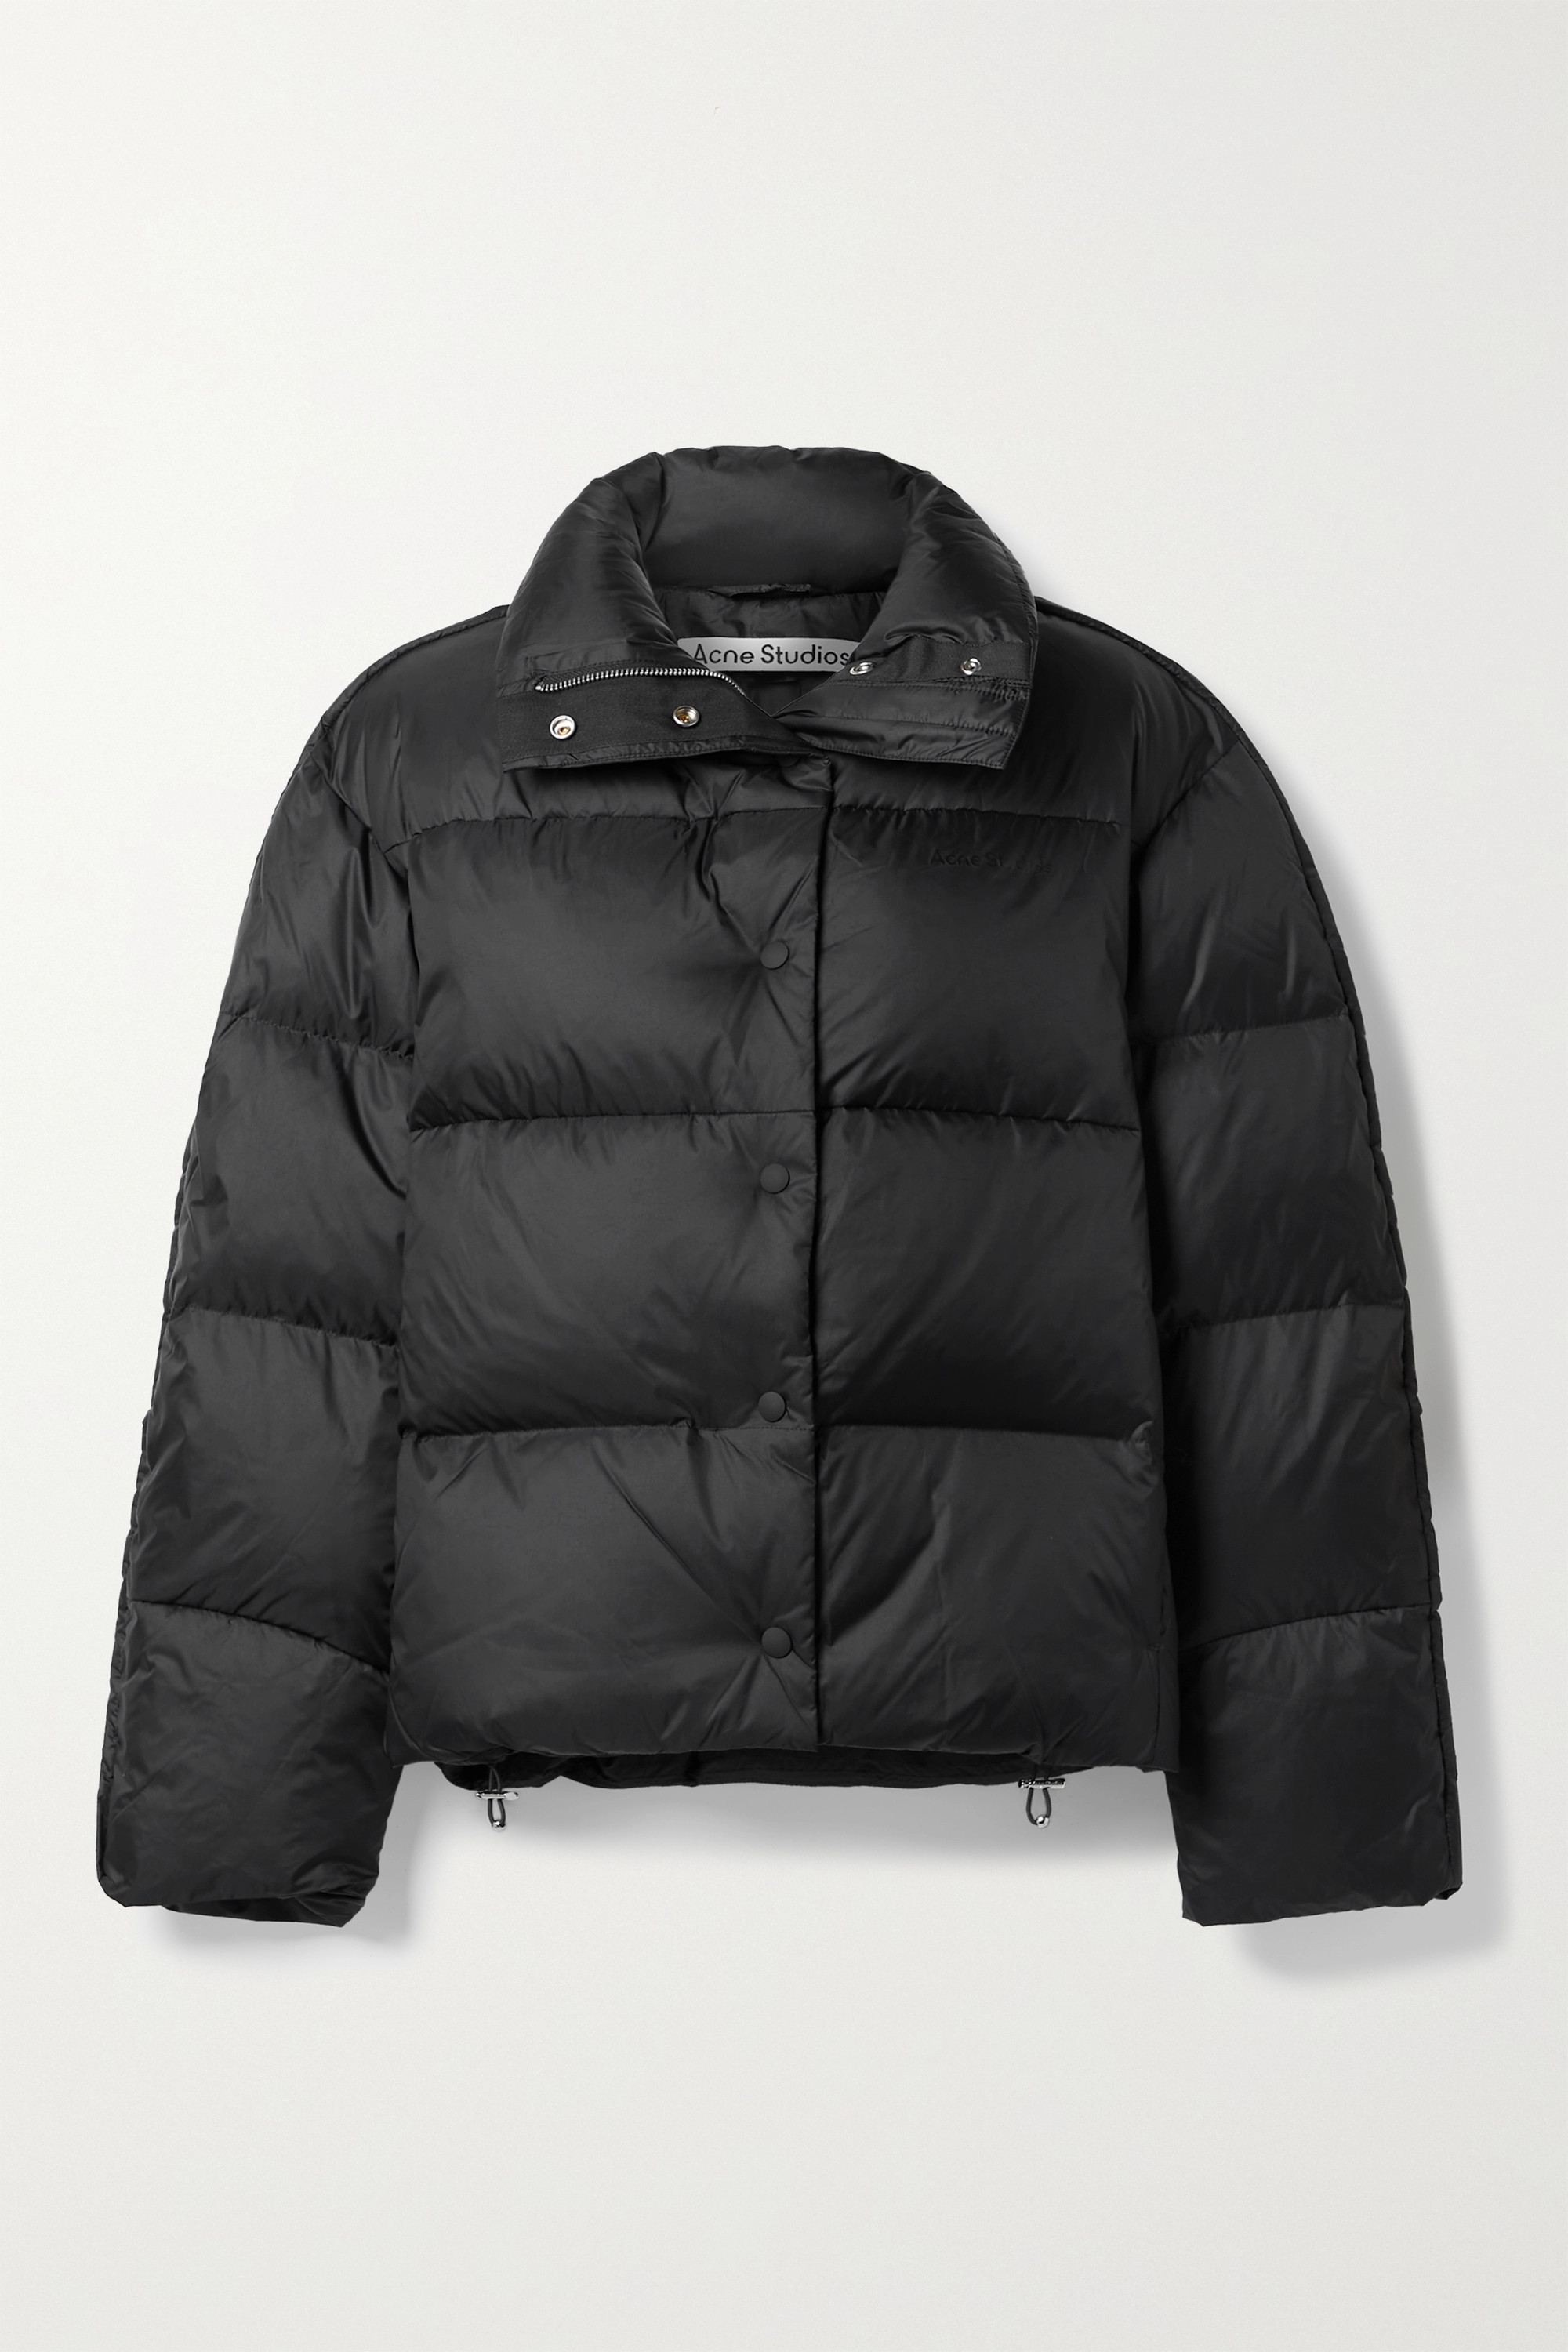 Acne Studios Quilted shell down coat